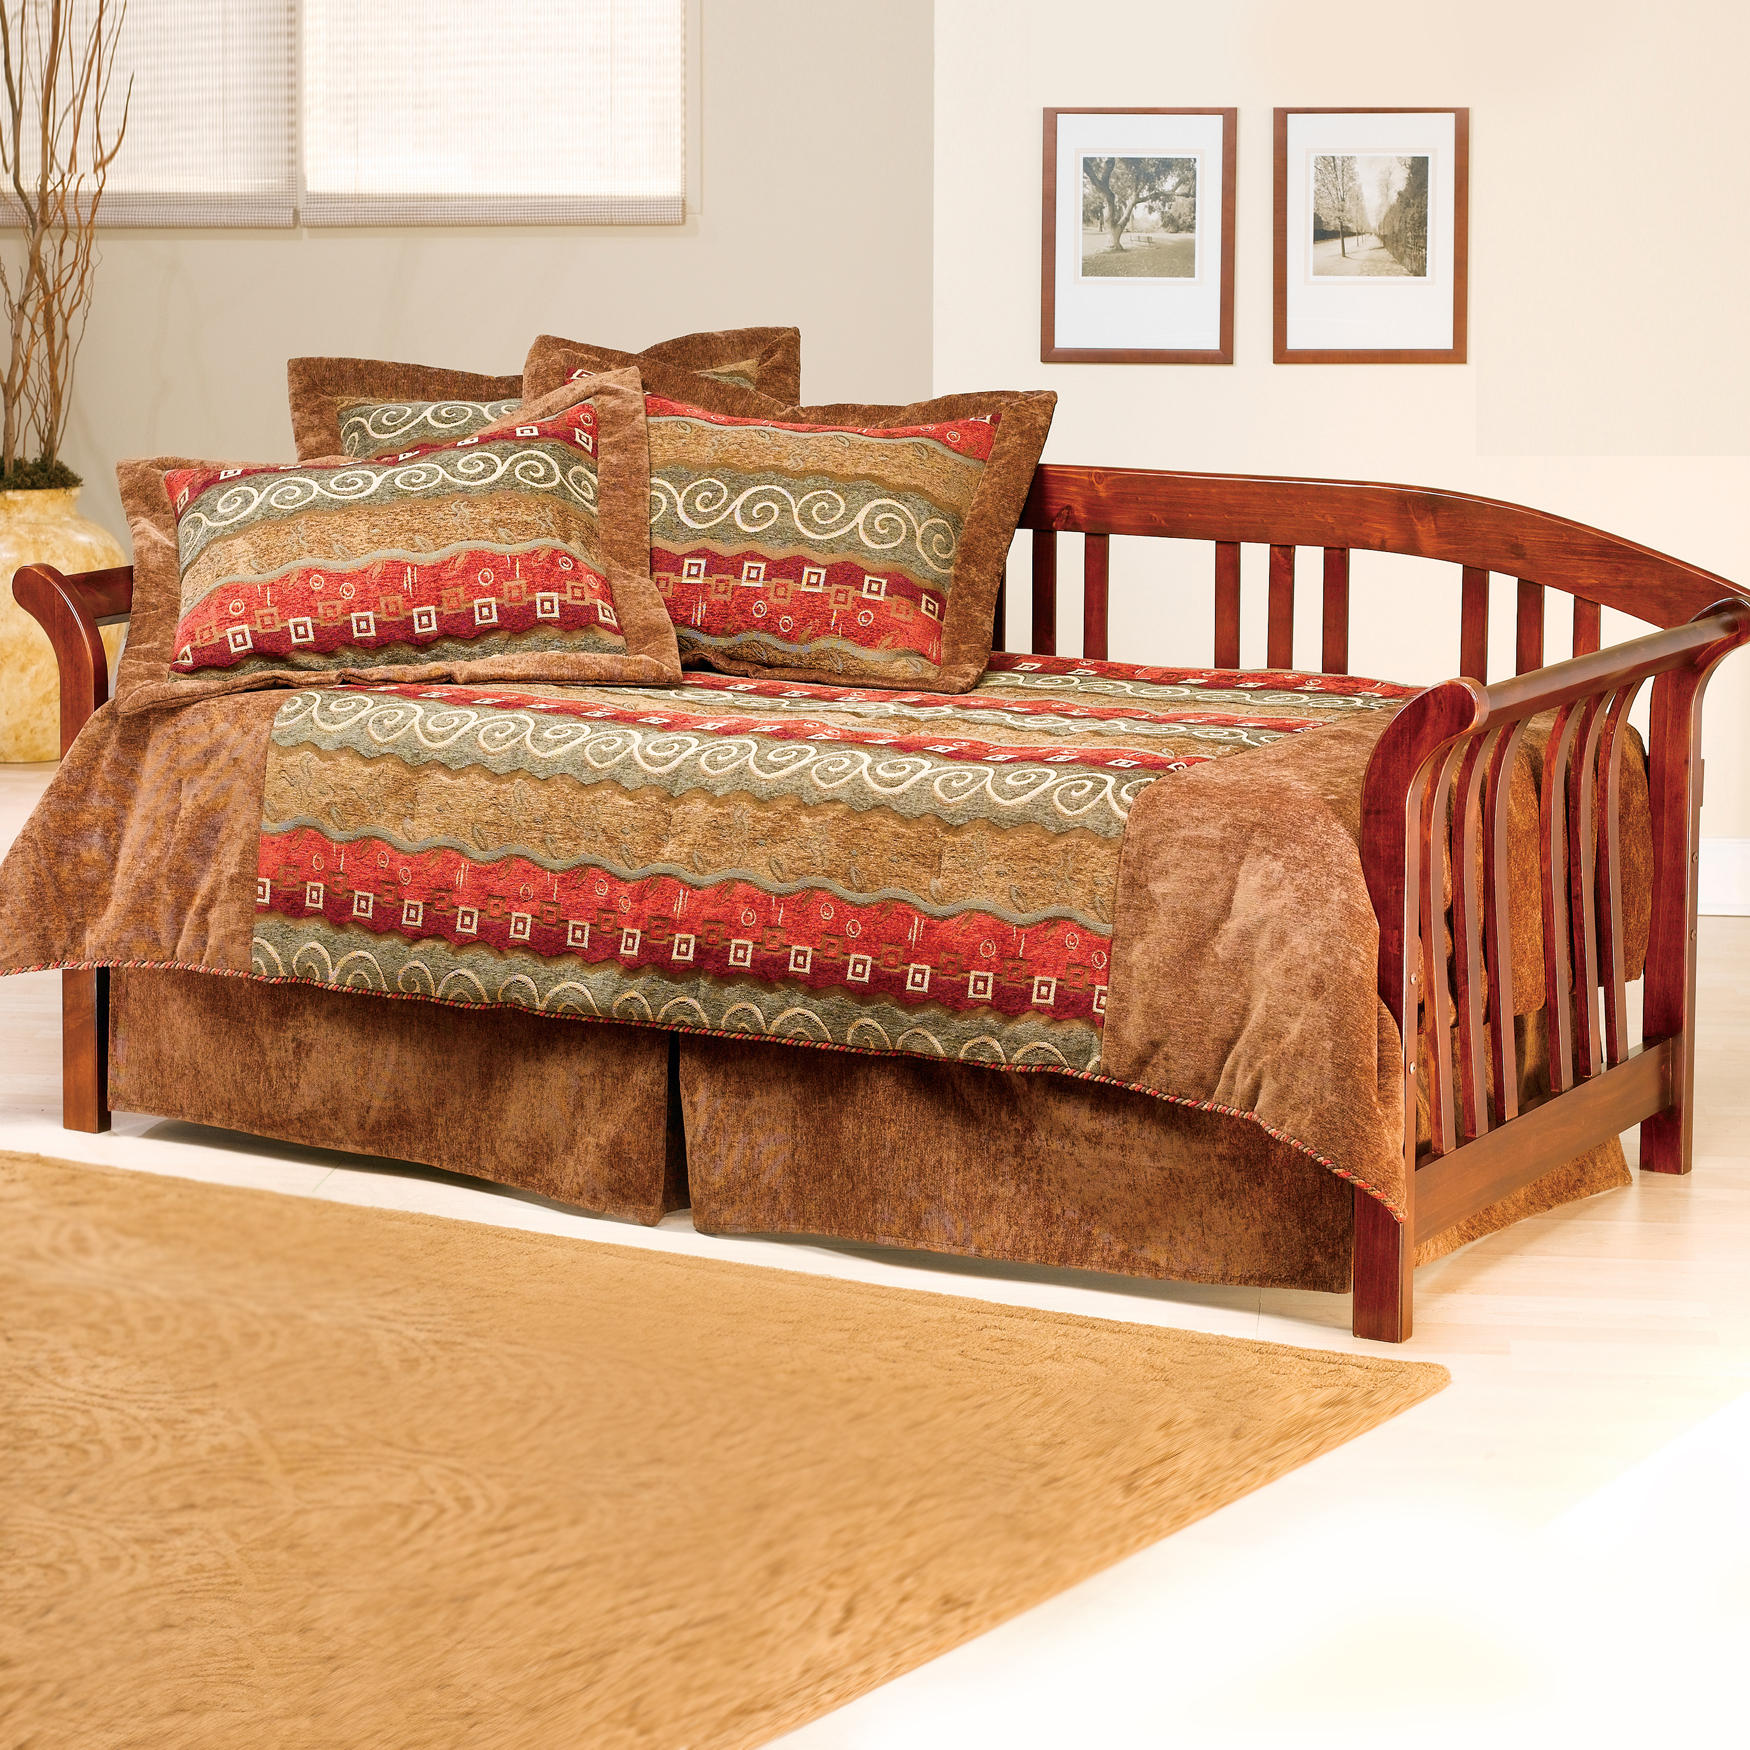 Dorchester Daybed with Suspension Deck, BROWN CHERRY